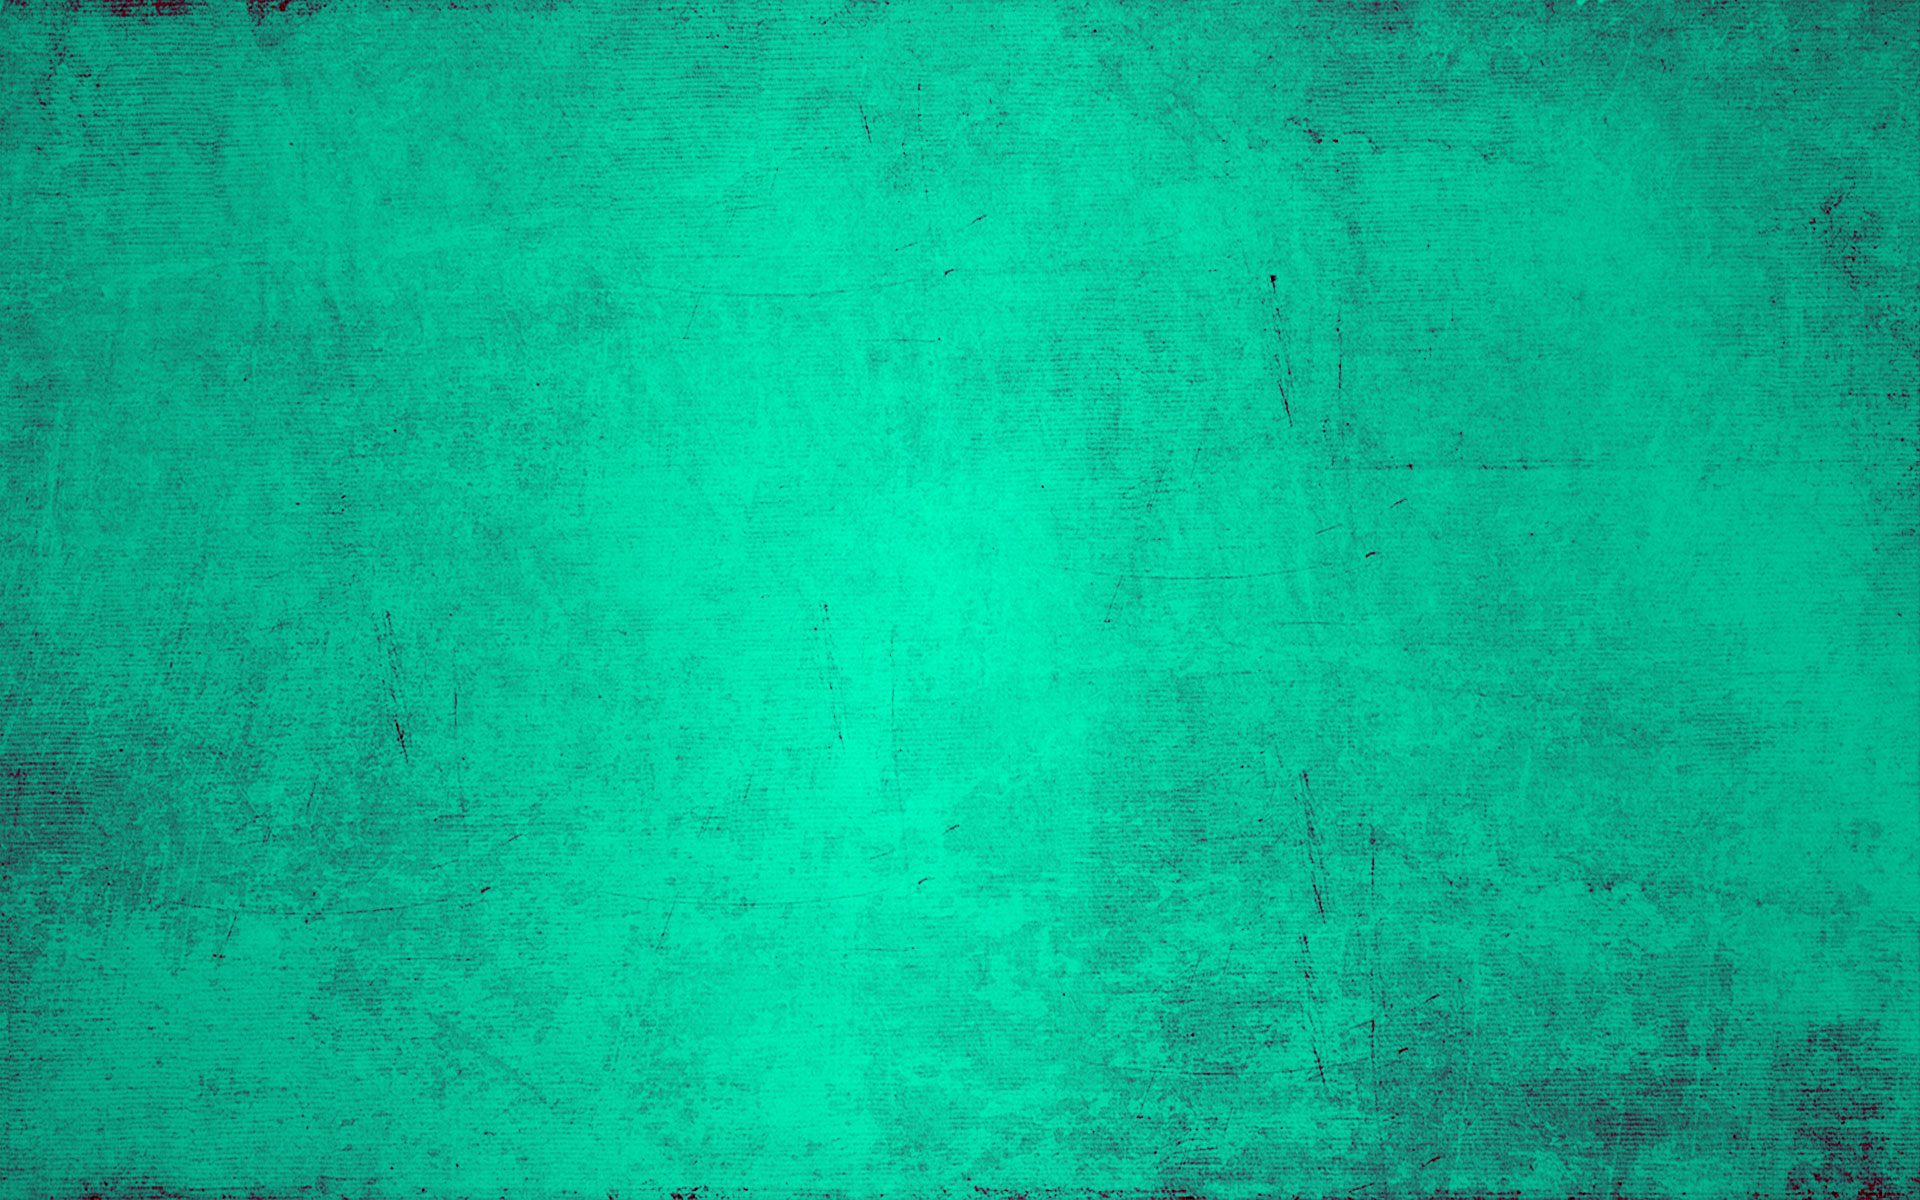 Turquoise Textures HD Wallpaper